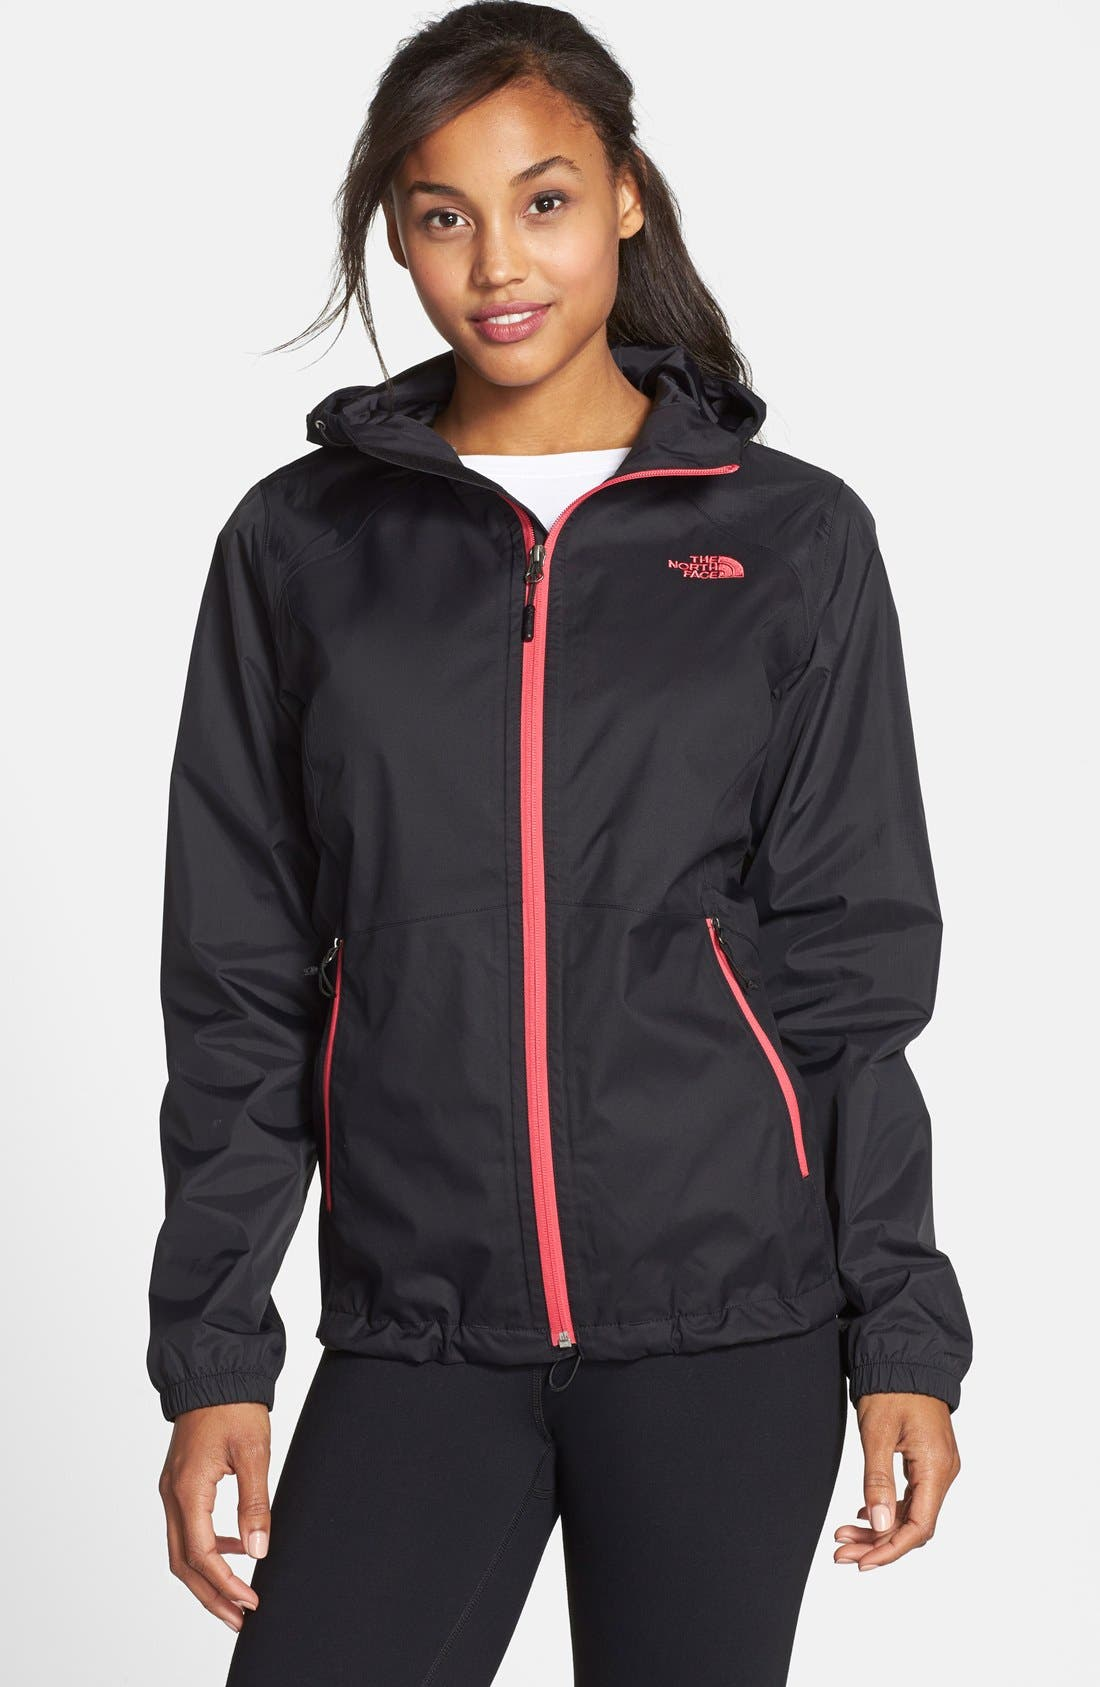 Main Image - The North Face 'Allabout' Hooded Jacket